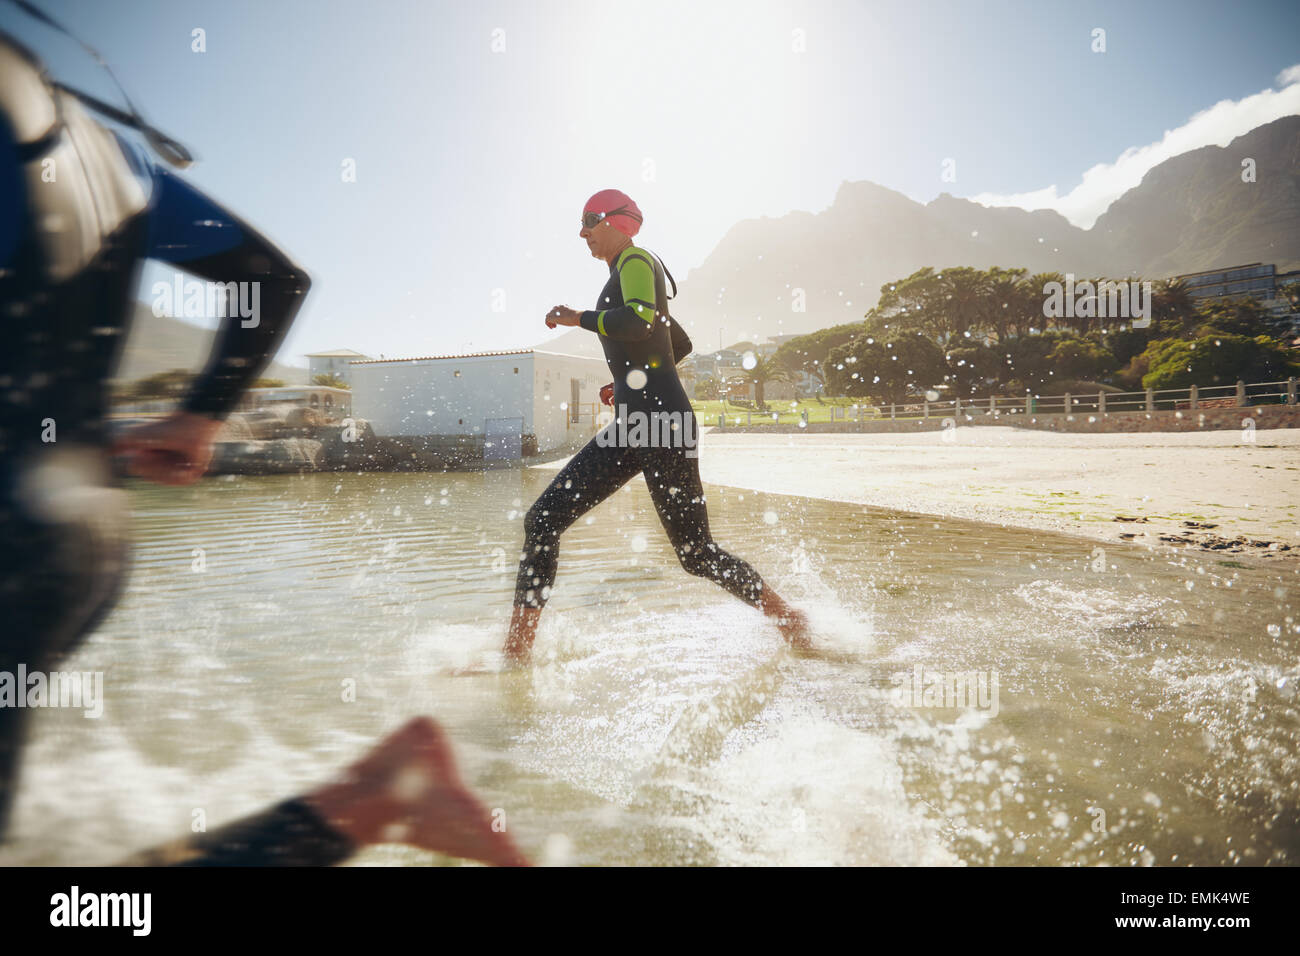 Participants running into the water for start of a triathlon. Two triathletes rushing into water. - Stock Image